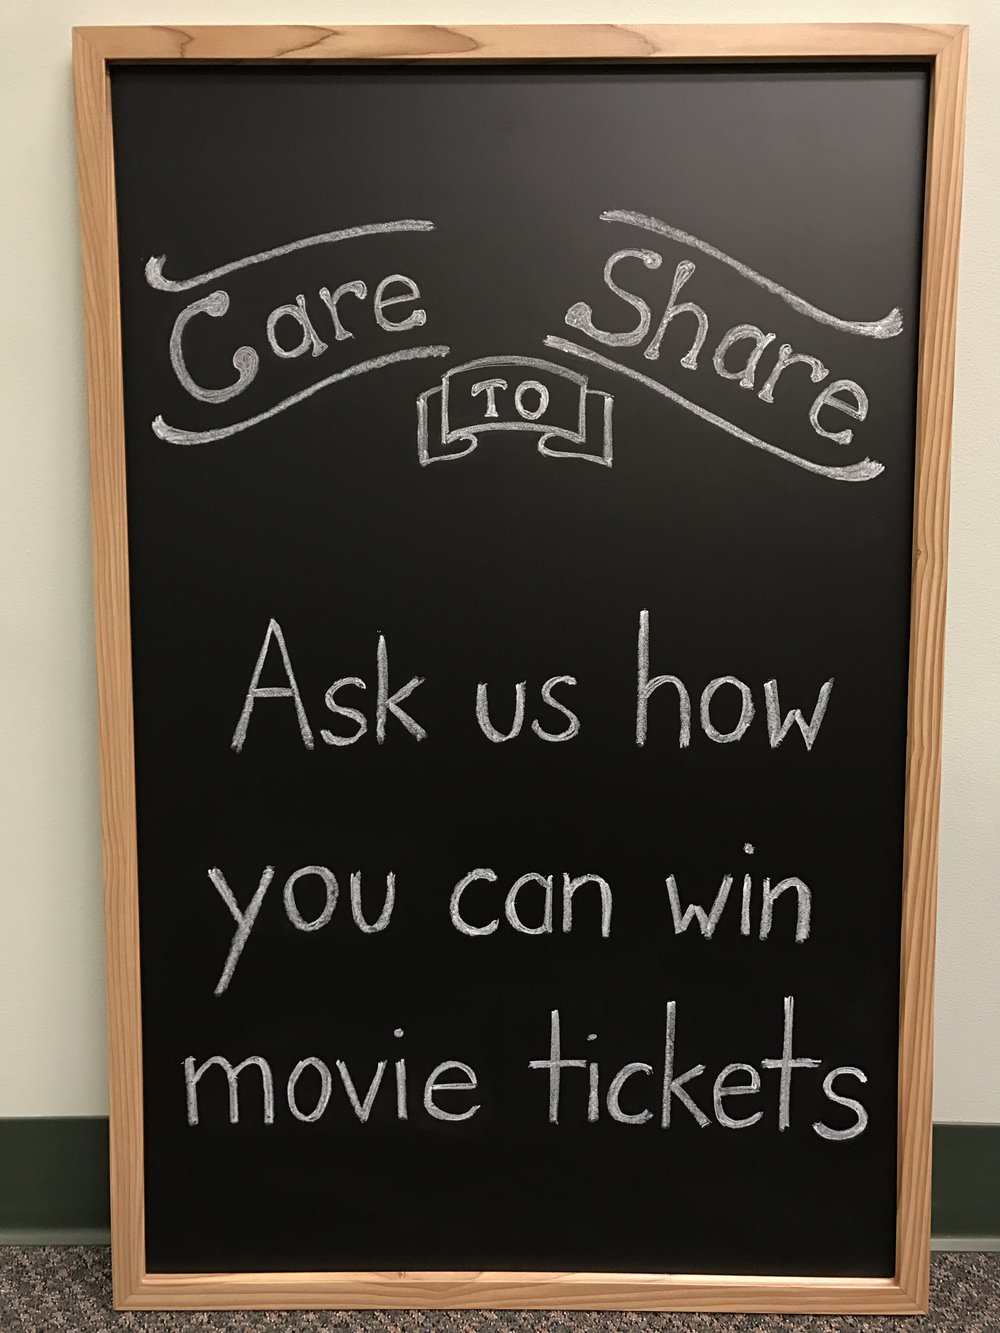 If you received care that you would want your family and friends to experience, please let them know!  We will give each person whom you refer a  $20  credit towards eye care services provided by our practice. When you refer 3 new patients to us, we will send you  4 movie tickets !